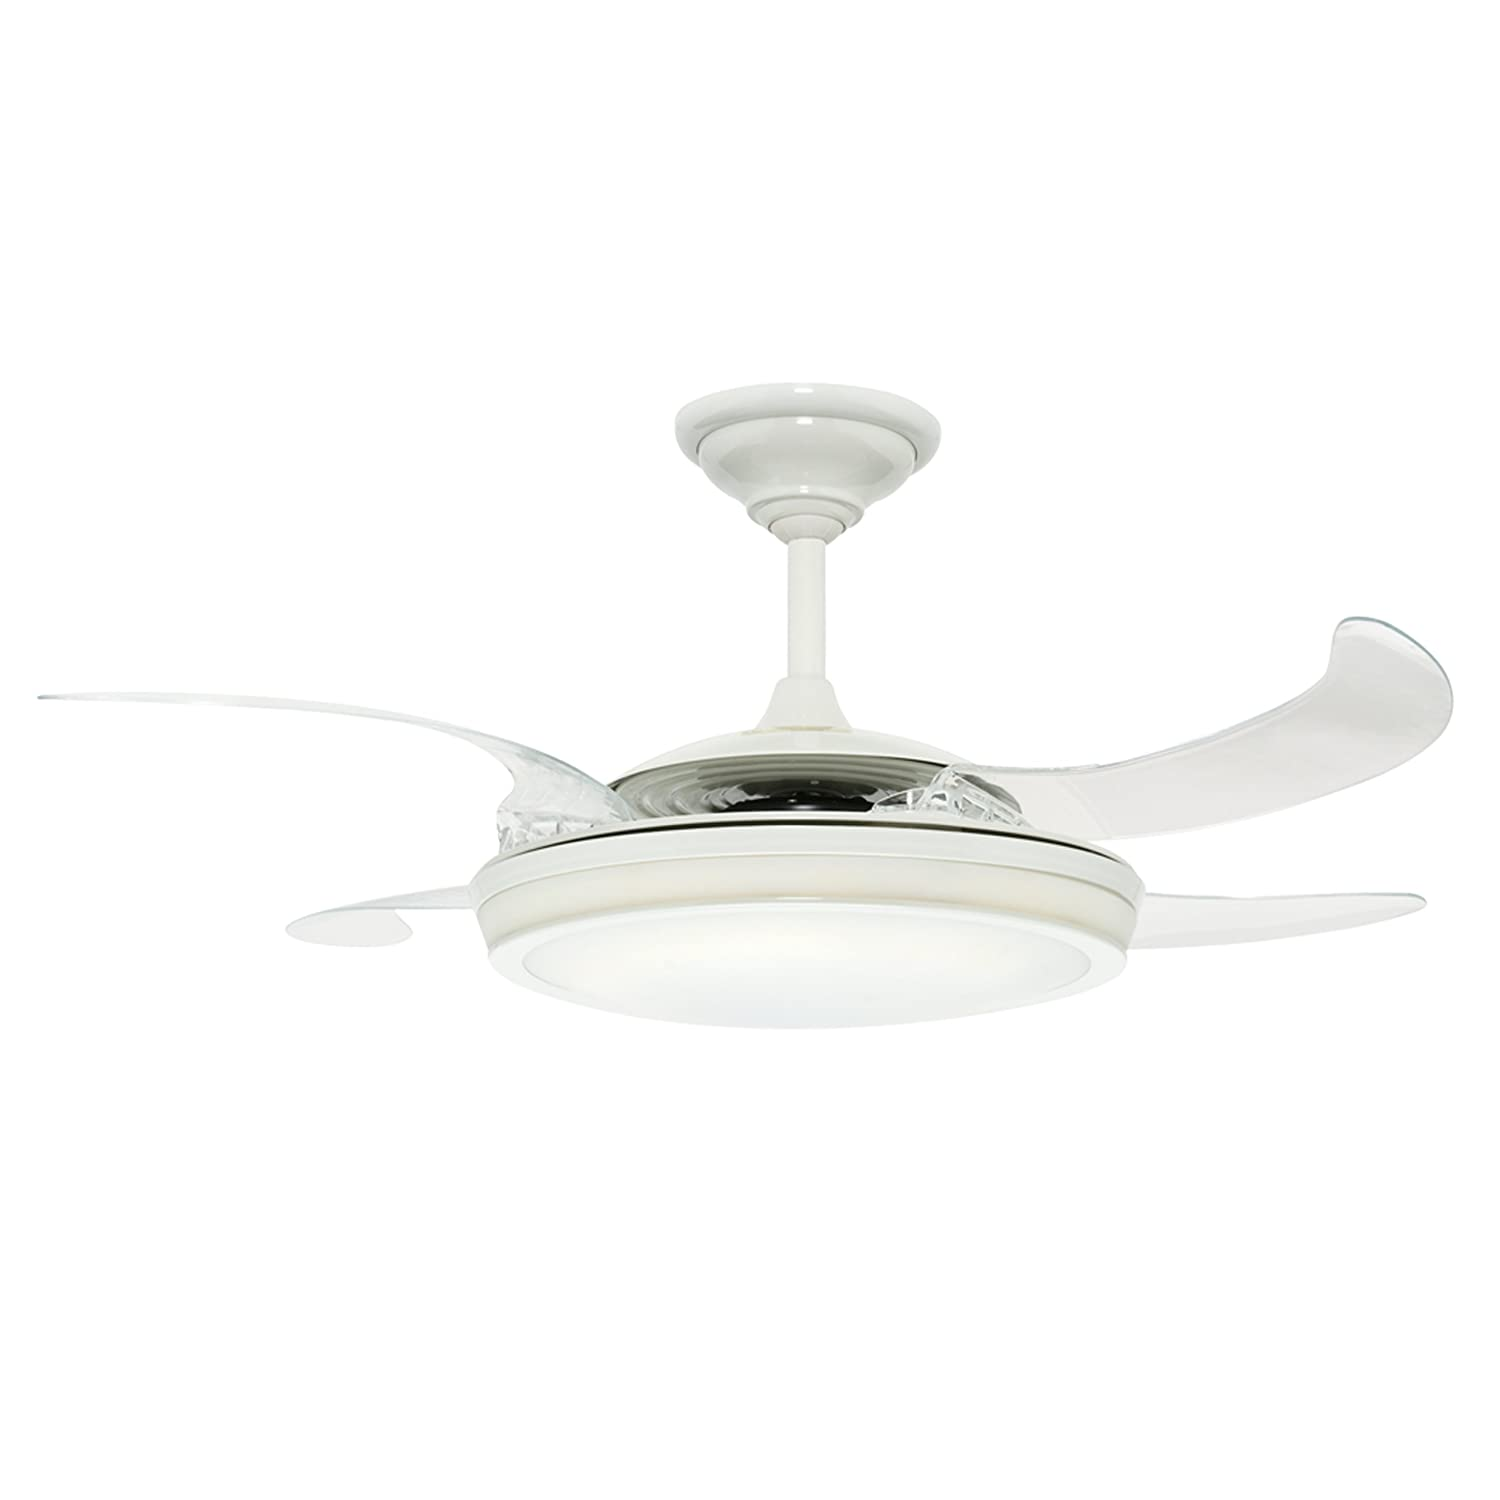 Hunter Fanaway 48 Inch Ceiling Fan White with Clear